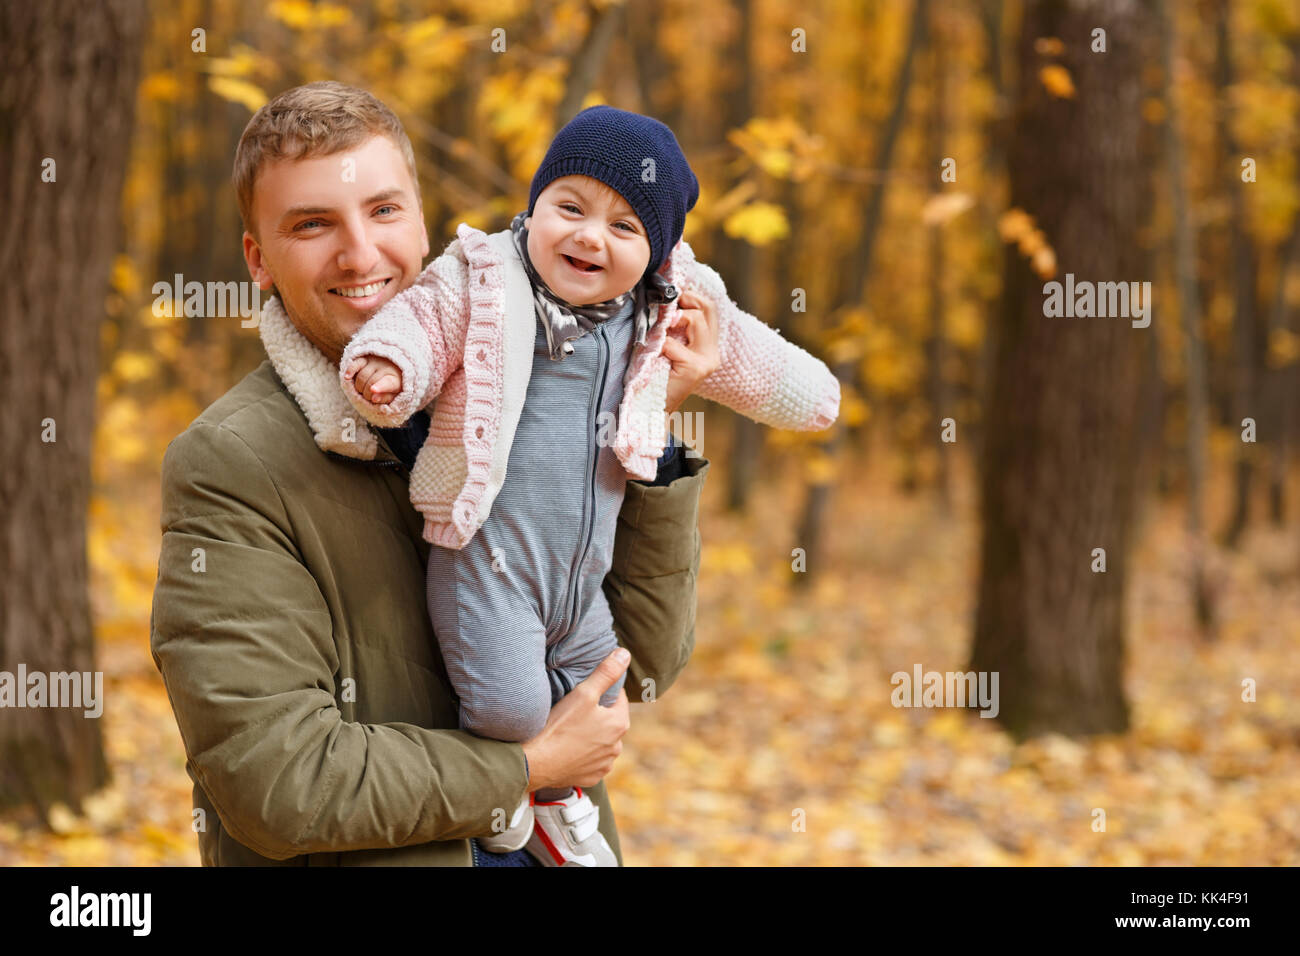 young father play with a little daughter in autumn park. Dad holding baby girl in hands. Happy family, paternal - Stock Image